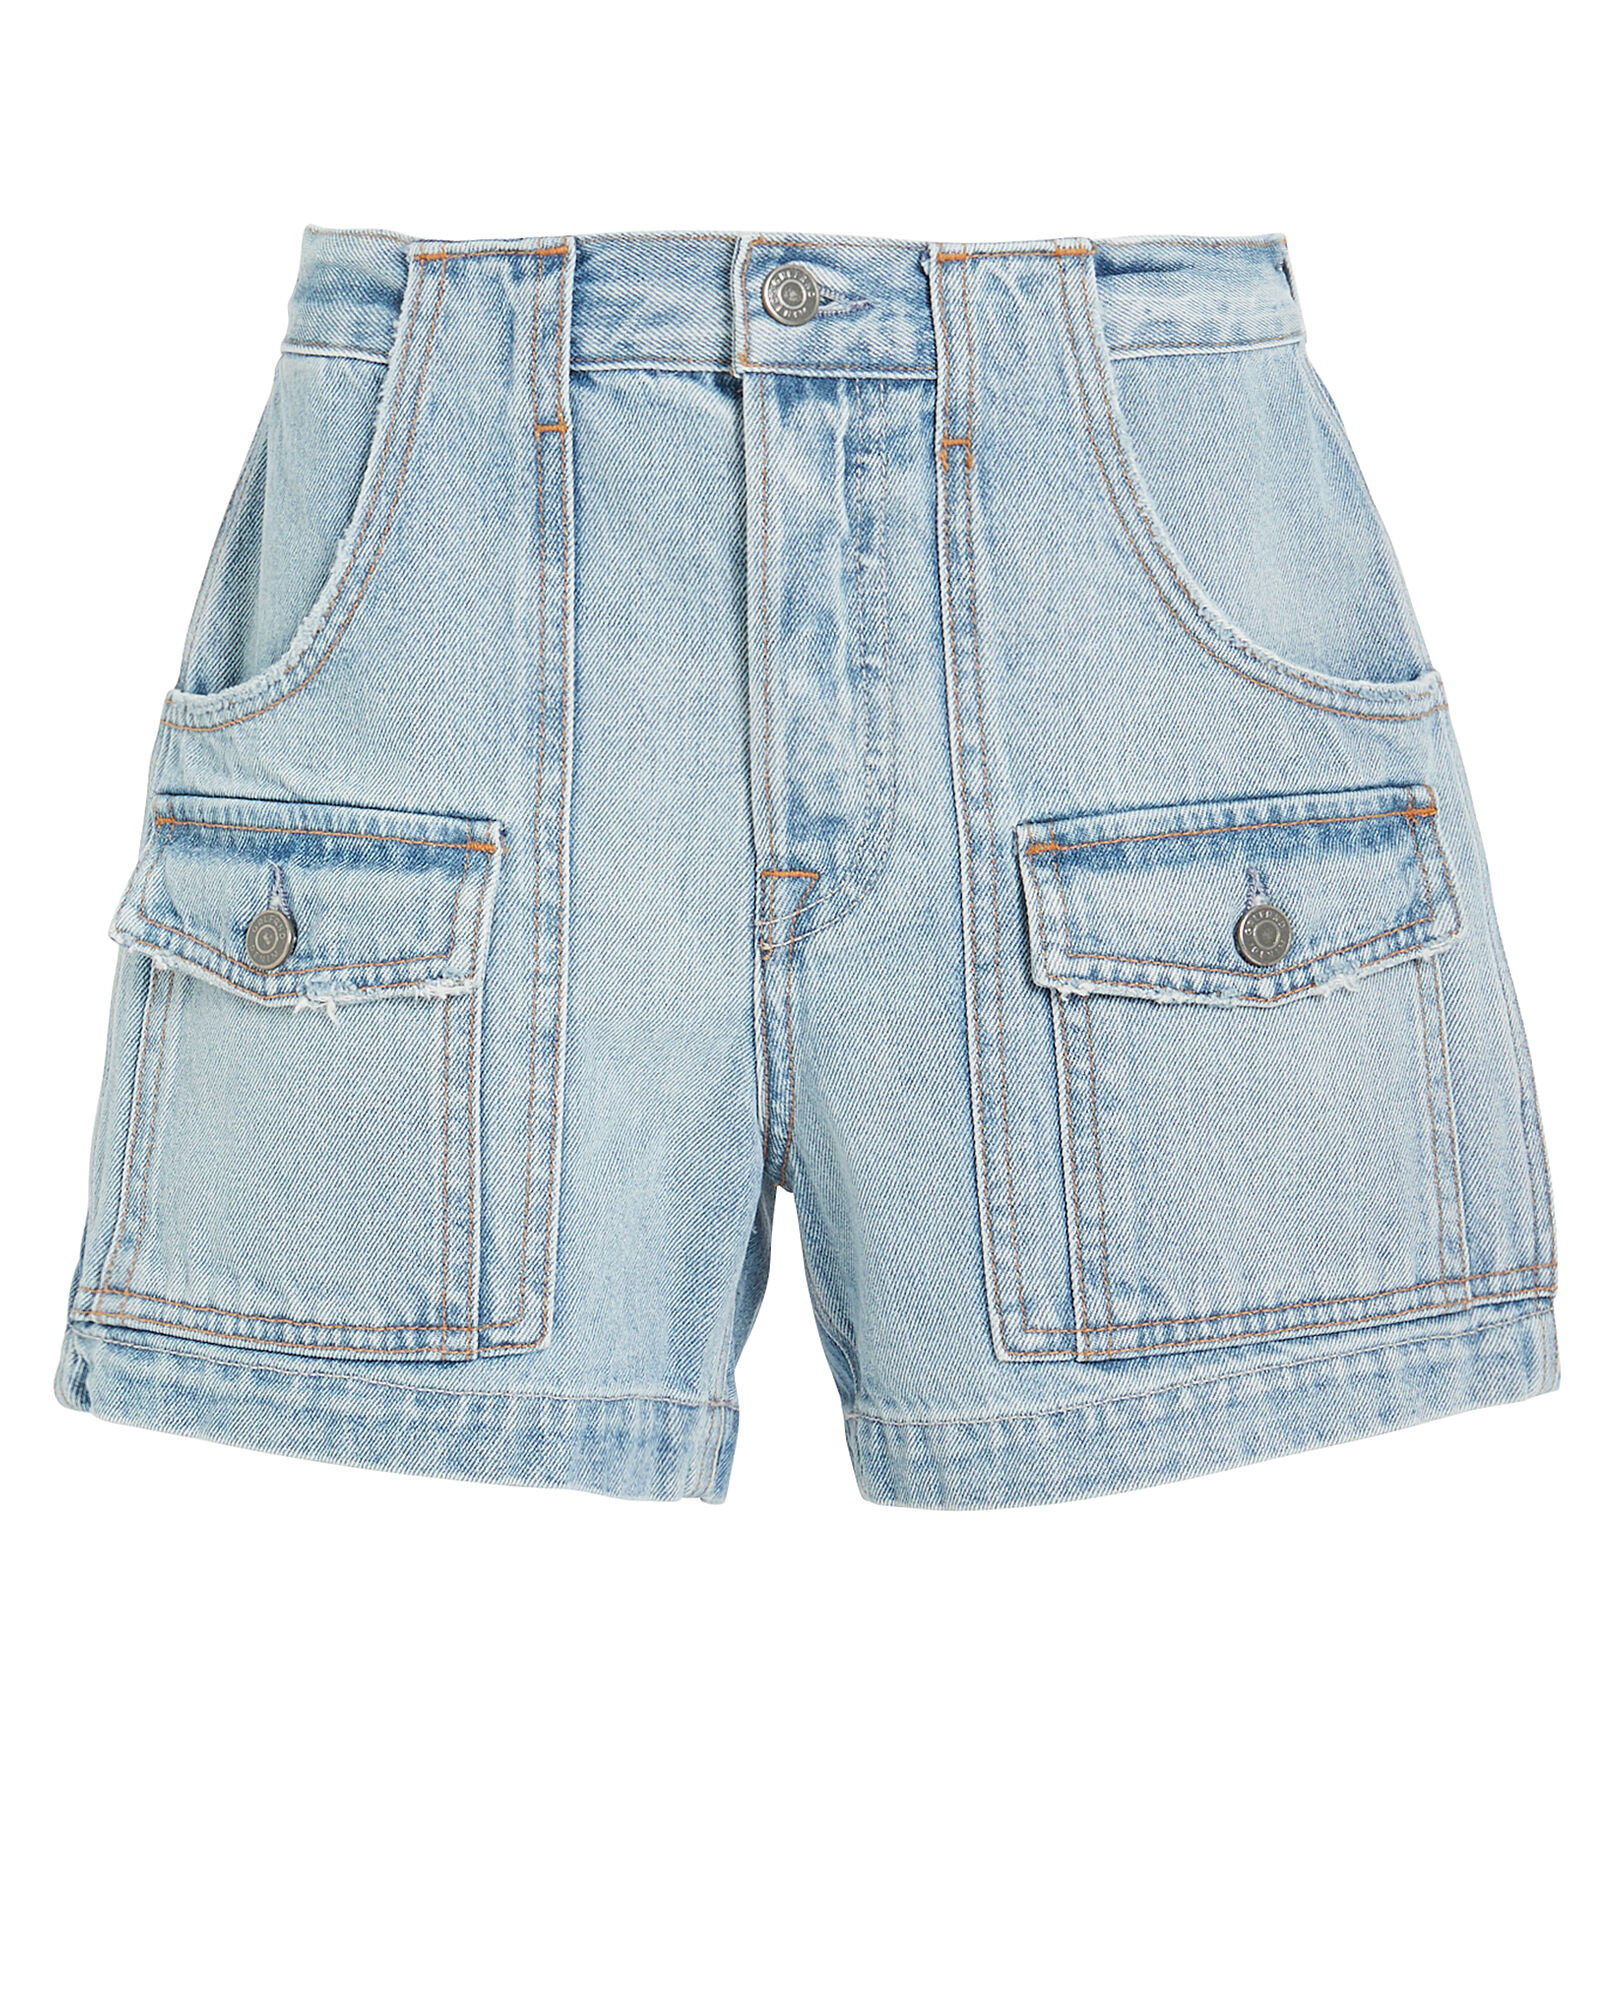 Chloe Cargo Shorts, DENIM-LT, hi-res